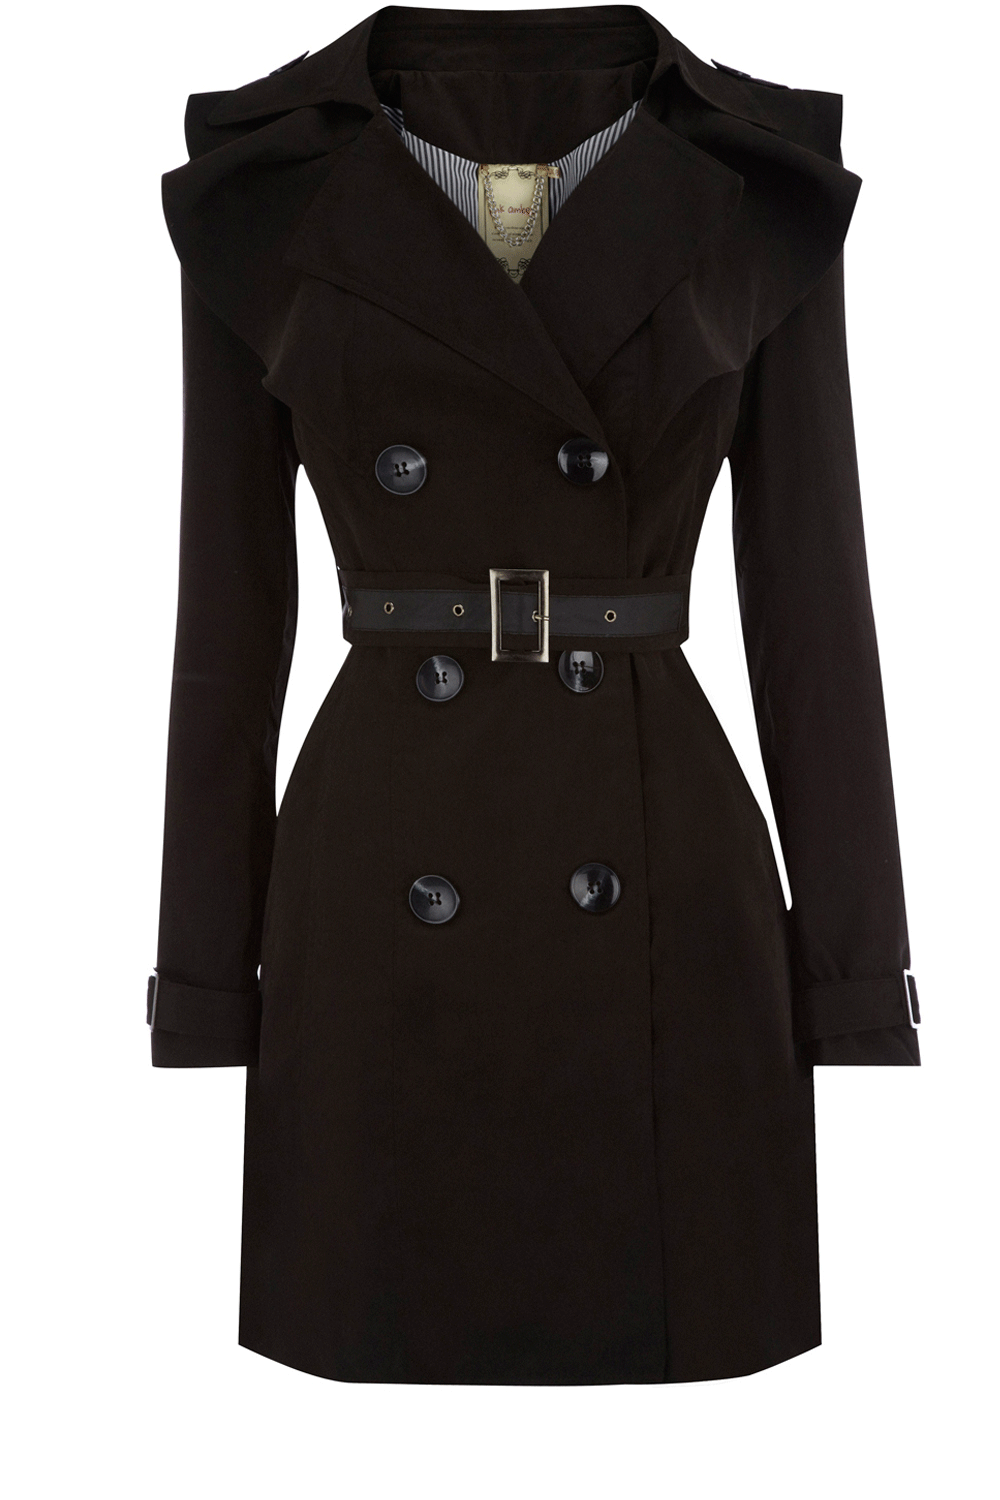 c003380574b3 Oasis Clothing | Black Frill Collar Trench Coat | Womens Fashion Clothing |  Oasis Stores UK